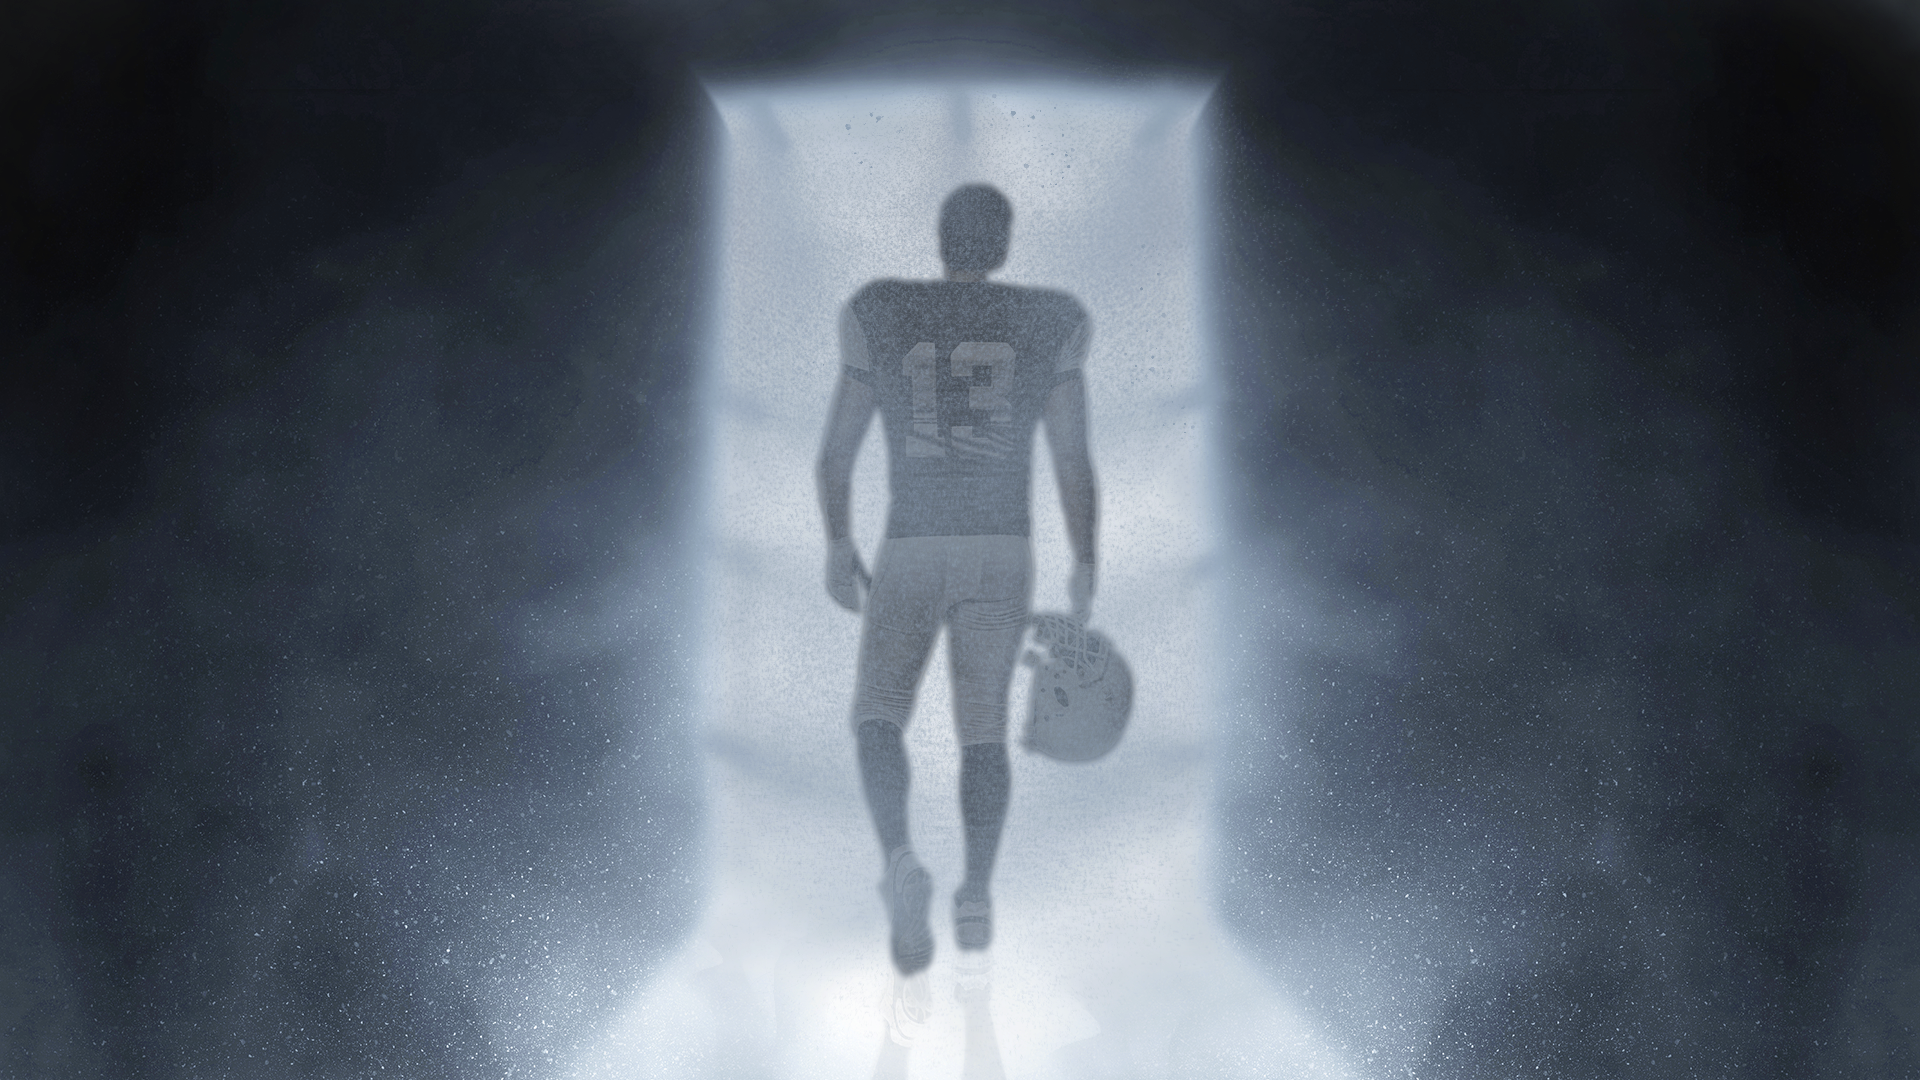 Illustration: A football player carrying a helmet walks through a ghostly, white-lit door.